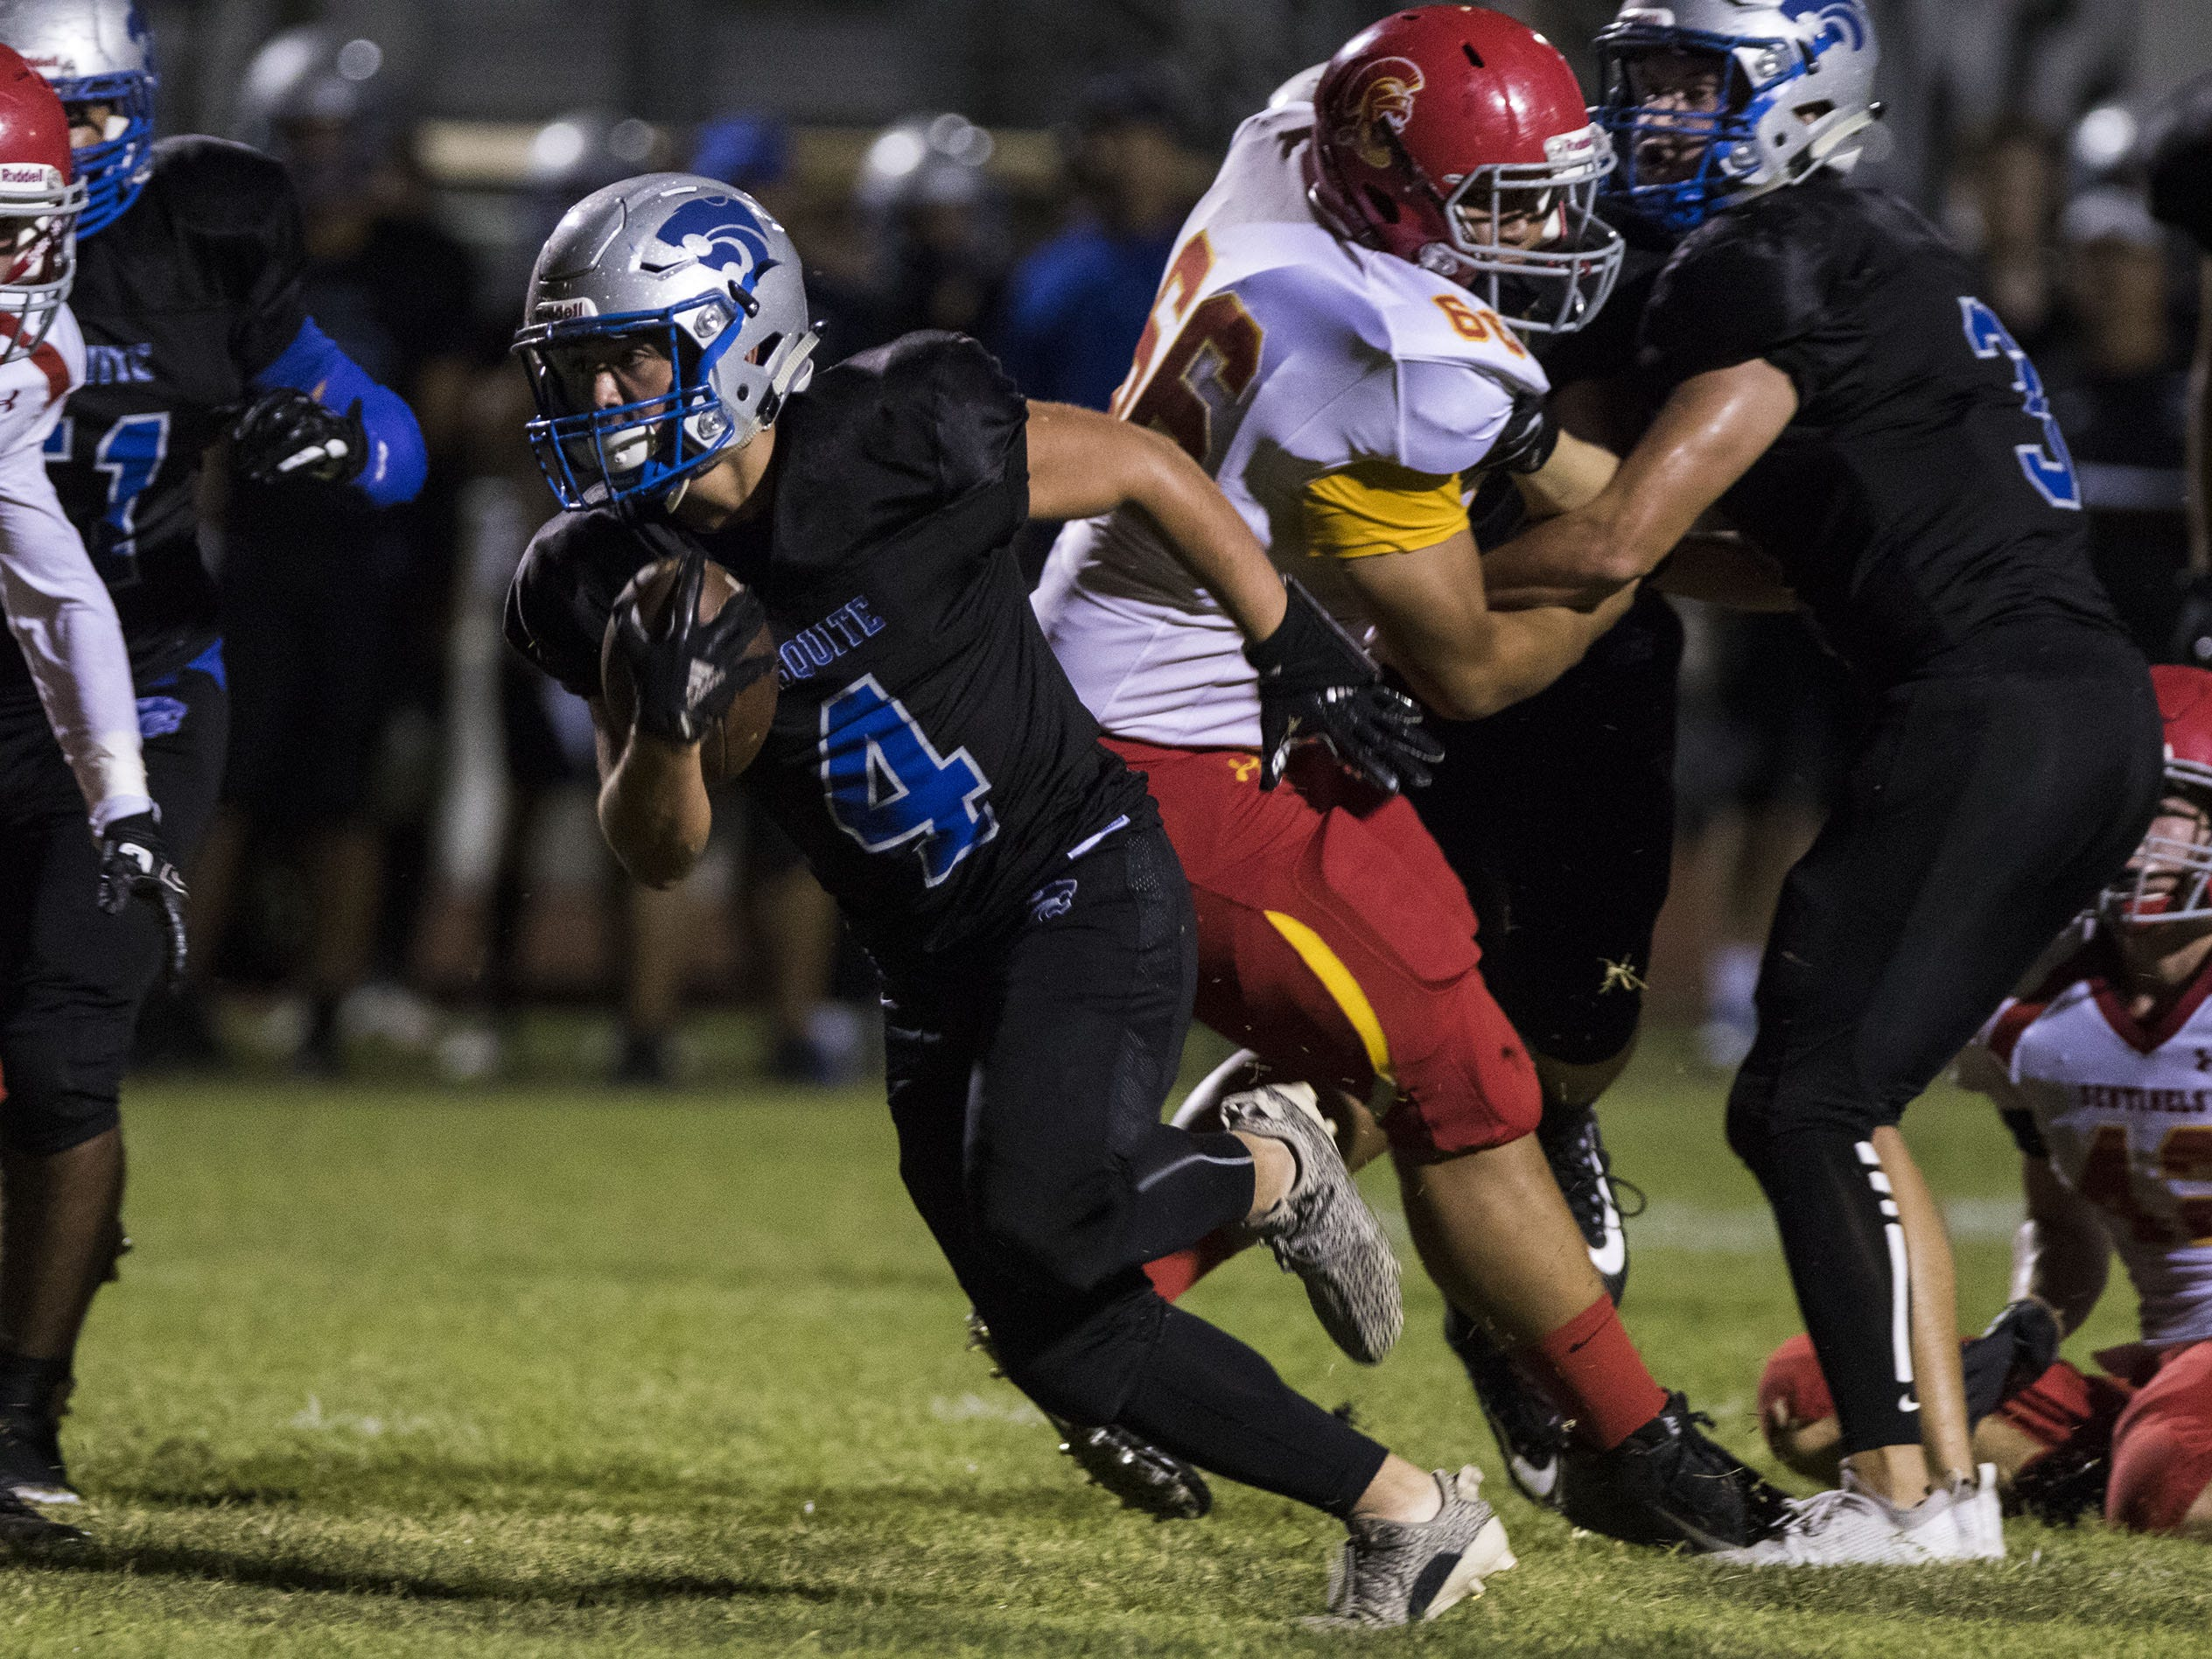 Mesquite's Chandler Coleman runs wild against Seton iduring their game in Gilbert Friday, Sept. 21, 2018. #azhsfb